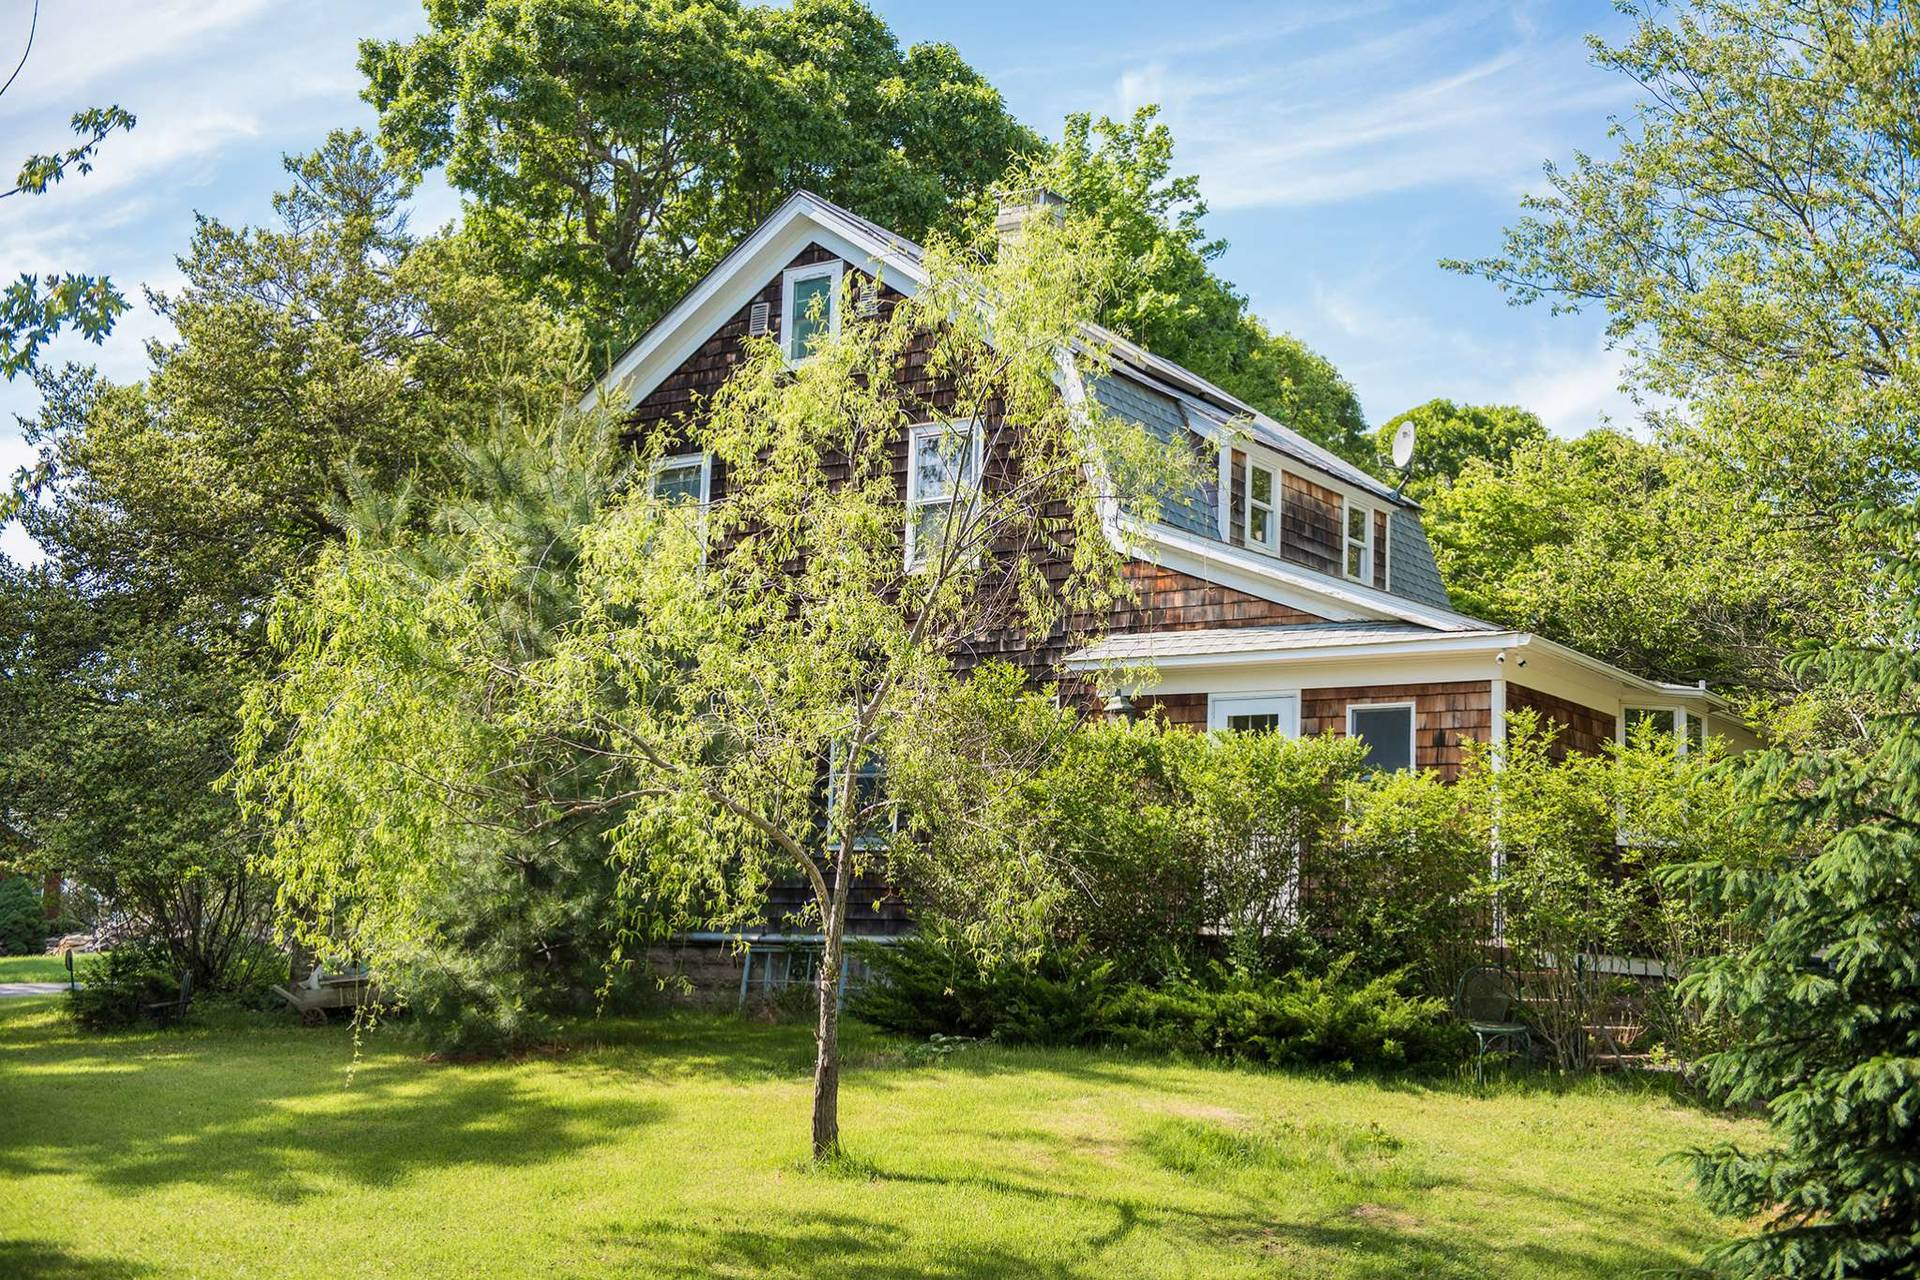 Single Family Home for Sale at Sweet Spot In Sag Harbor Village 14 Shaw Road, Sag Harbor, New York